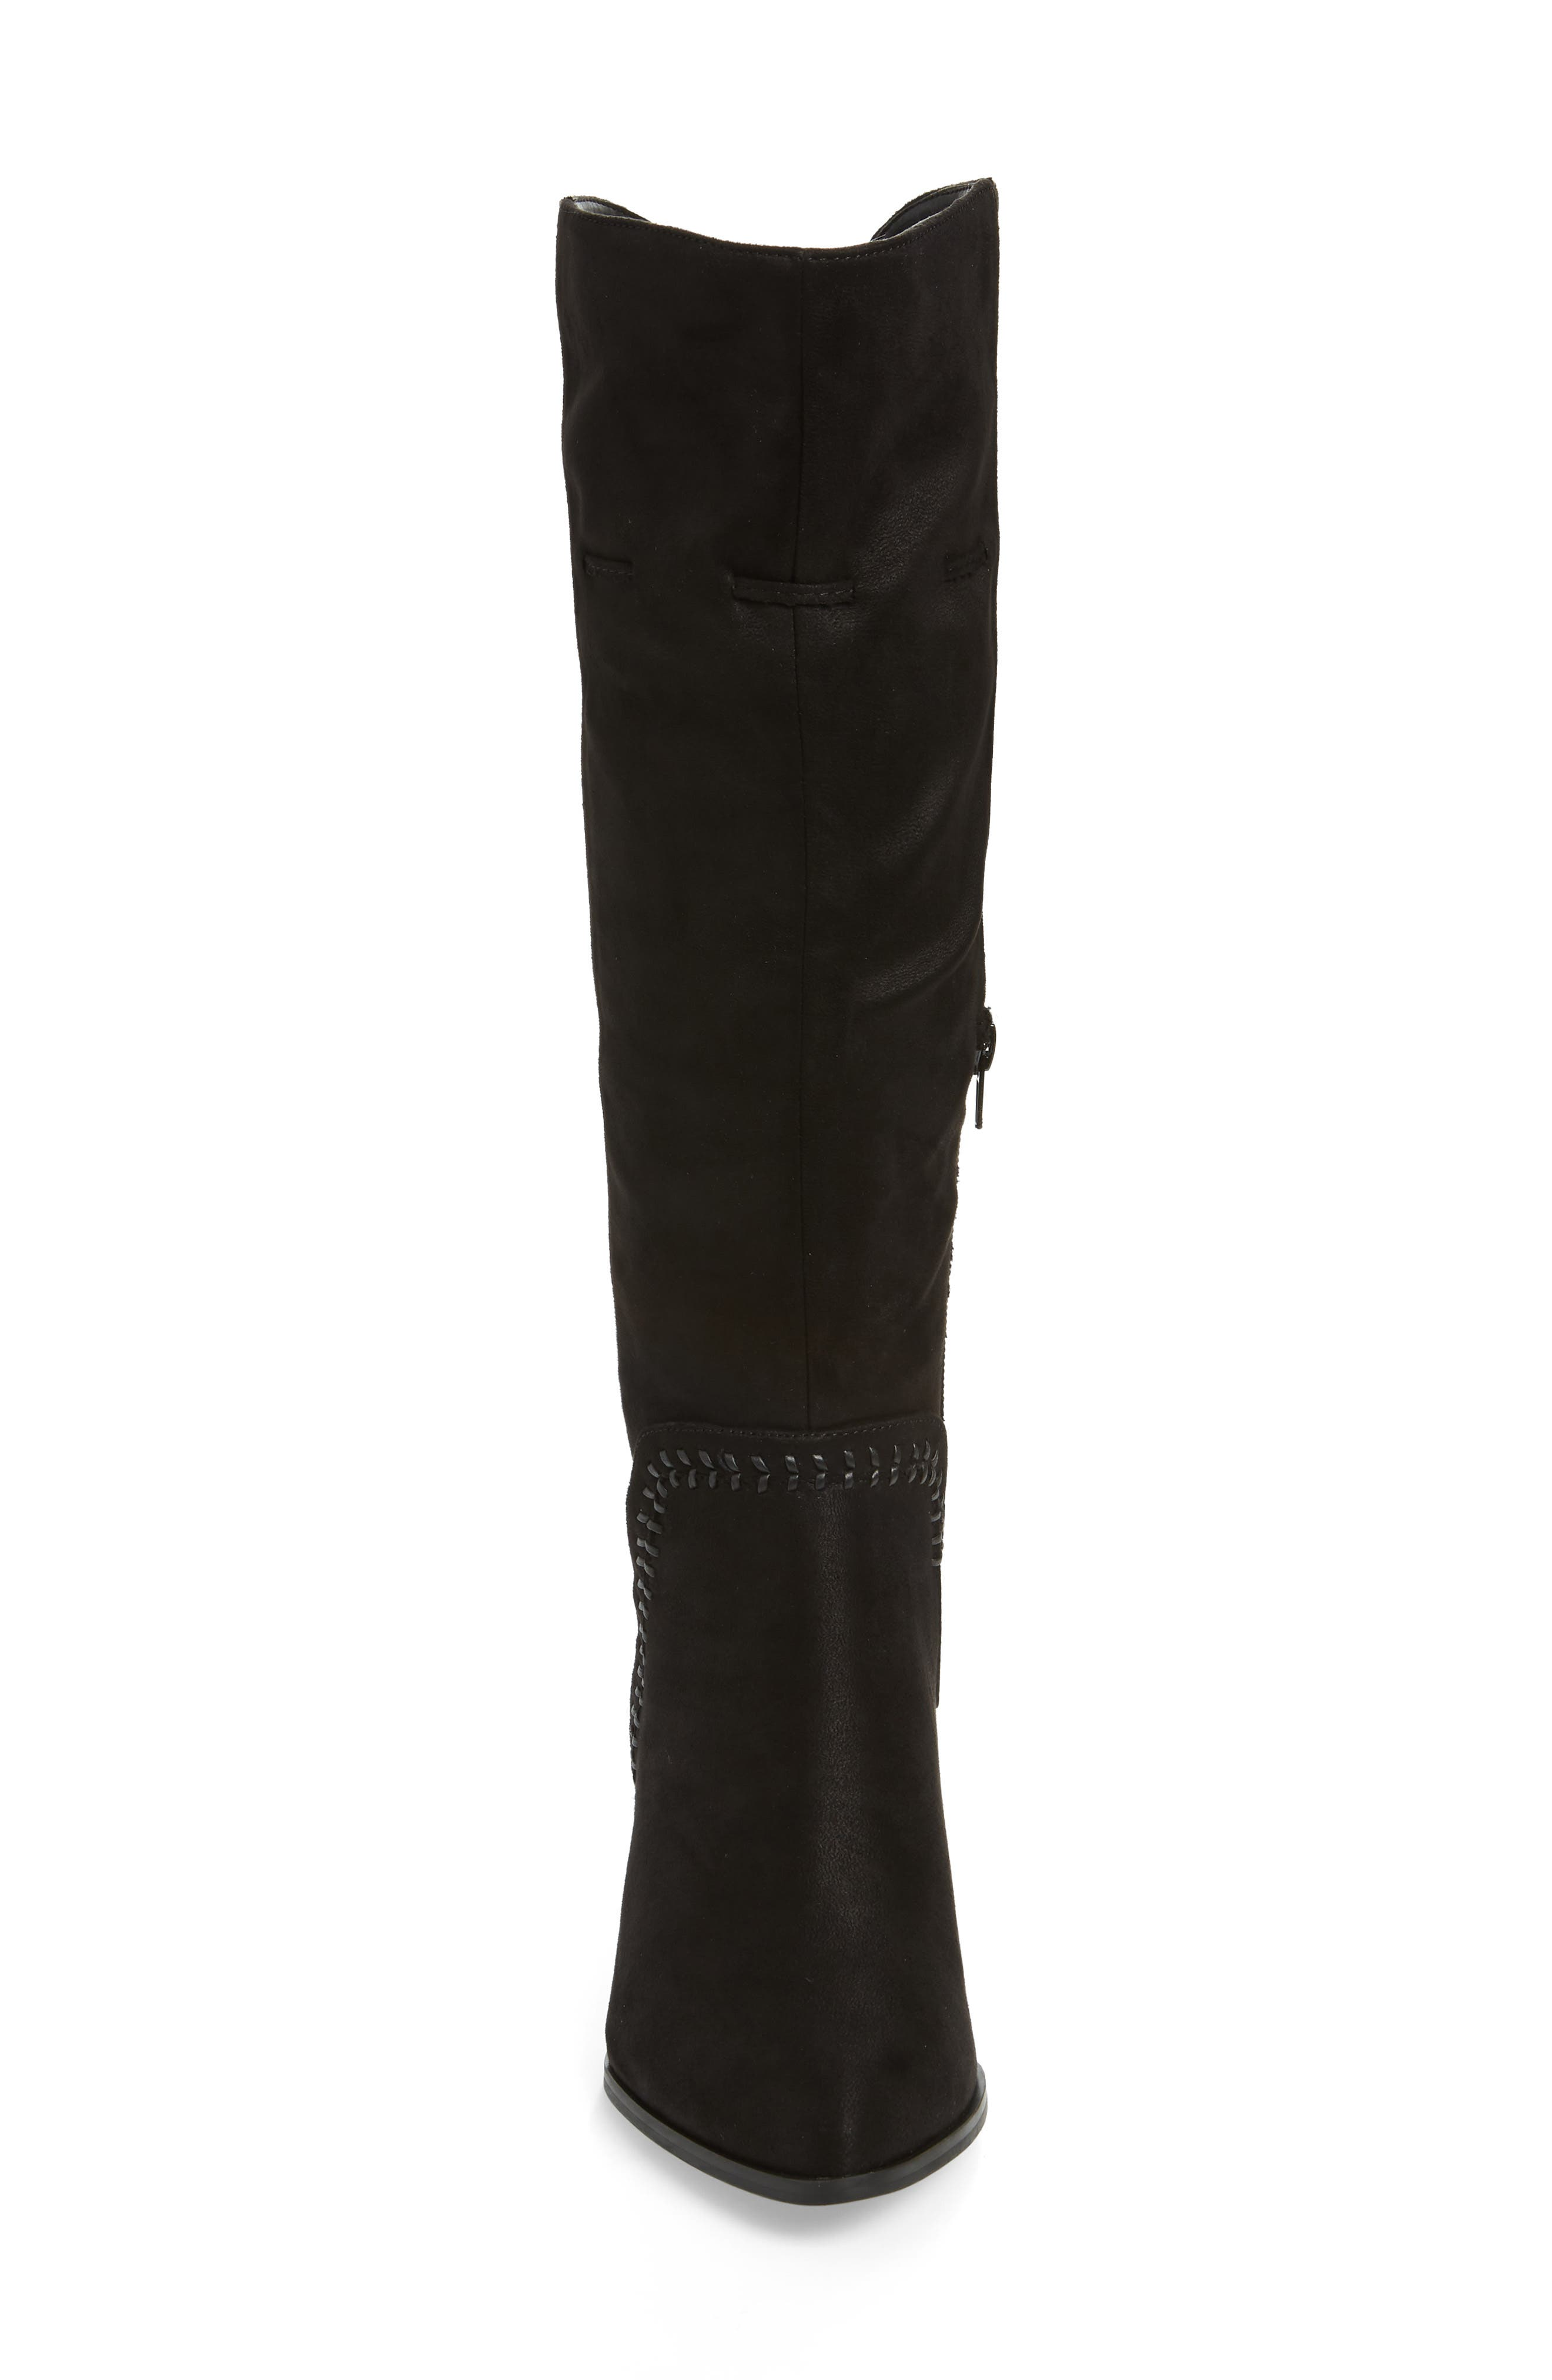 BELLA VITA, Eleanor II Knee High Boot, Alternate thumbnail 4, color, BLACK